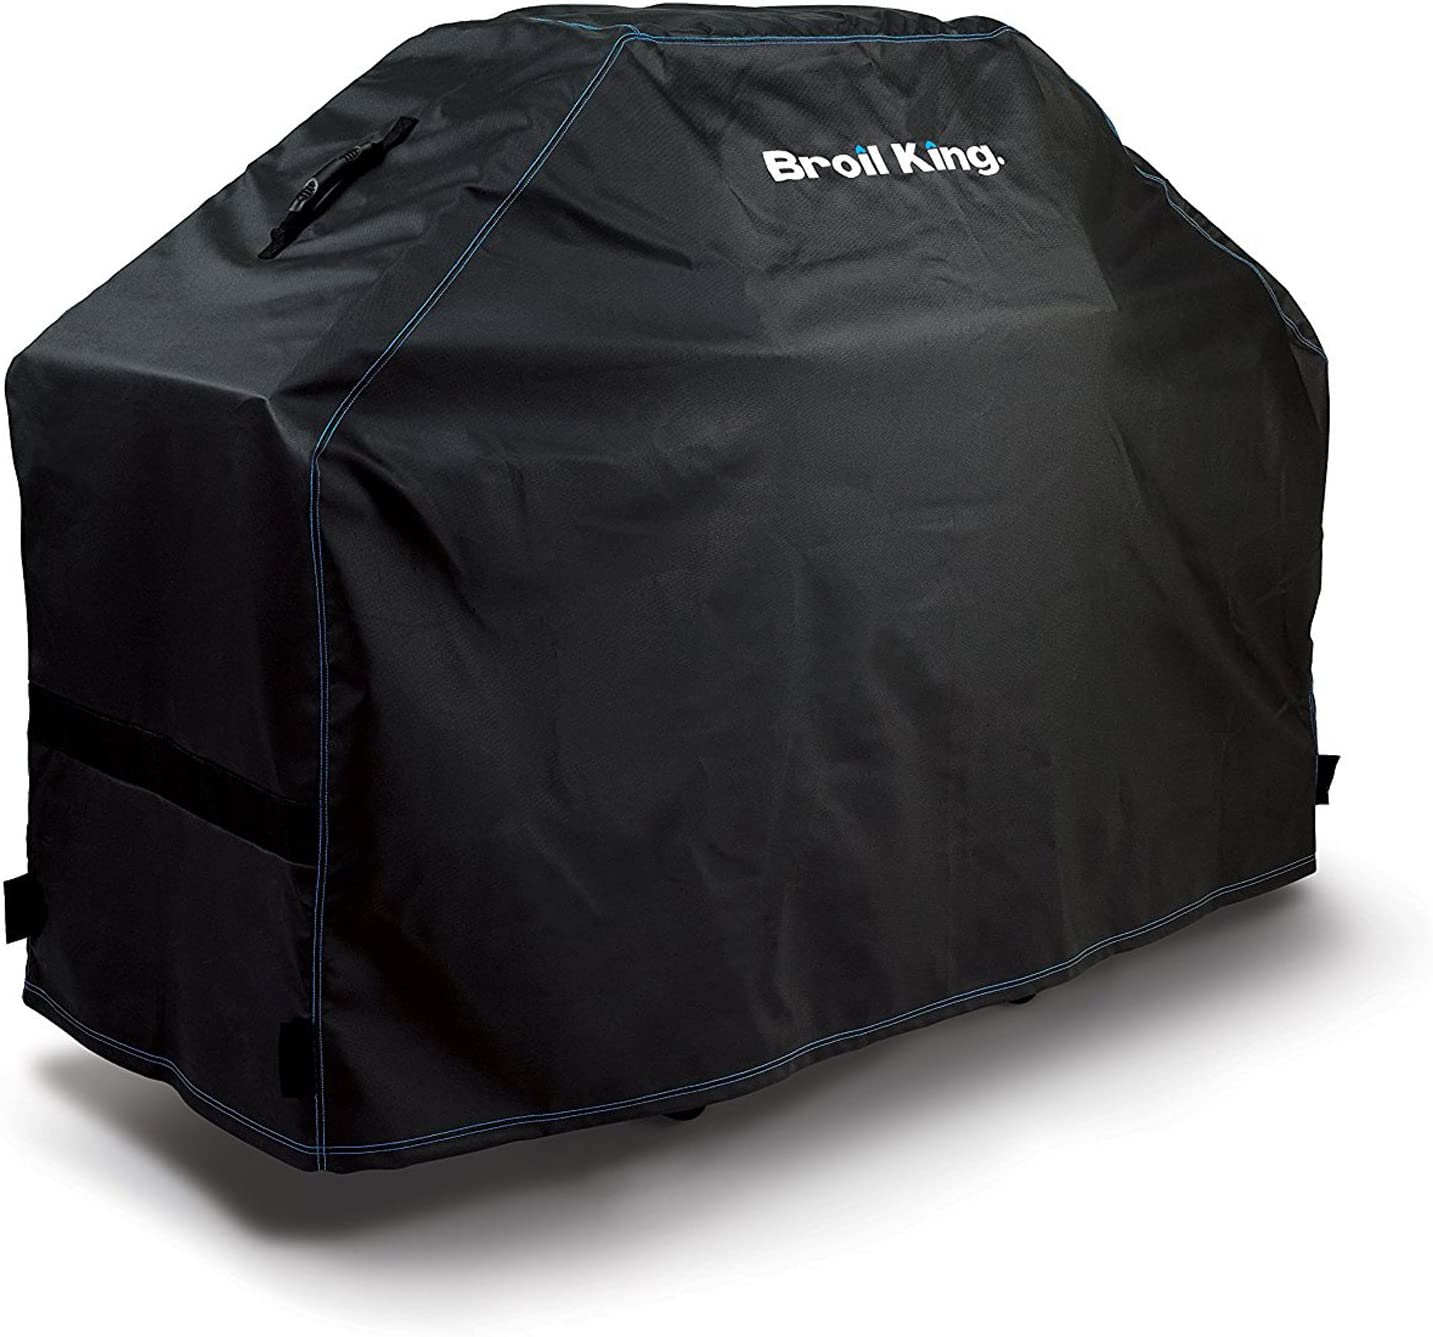 "Broil King 64"" Premium Exact Fit Cover for Baron 500-Series BBQ Grills"